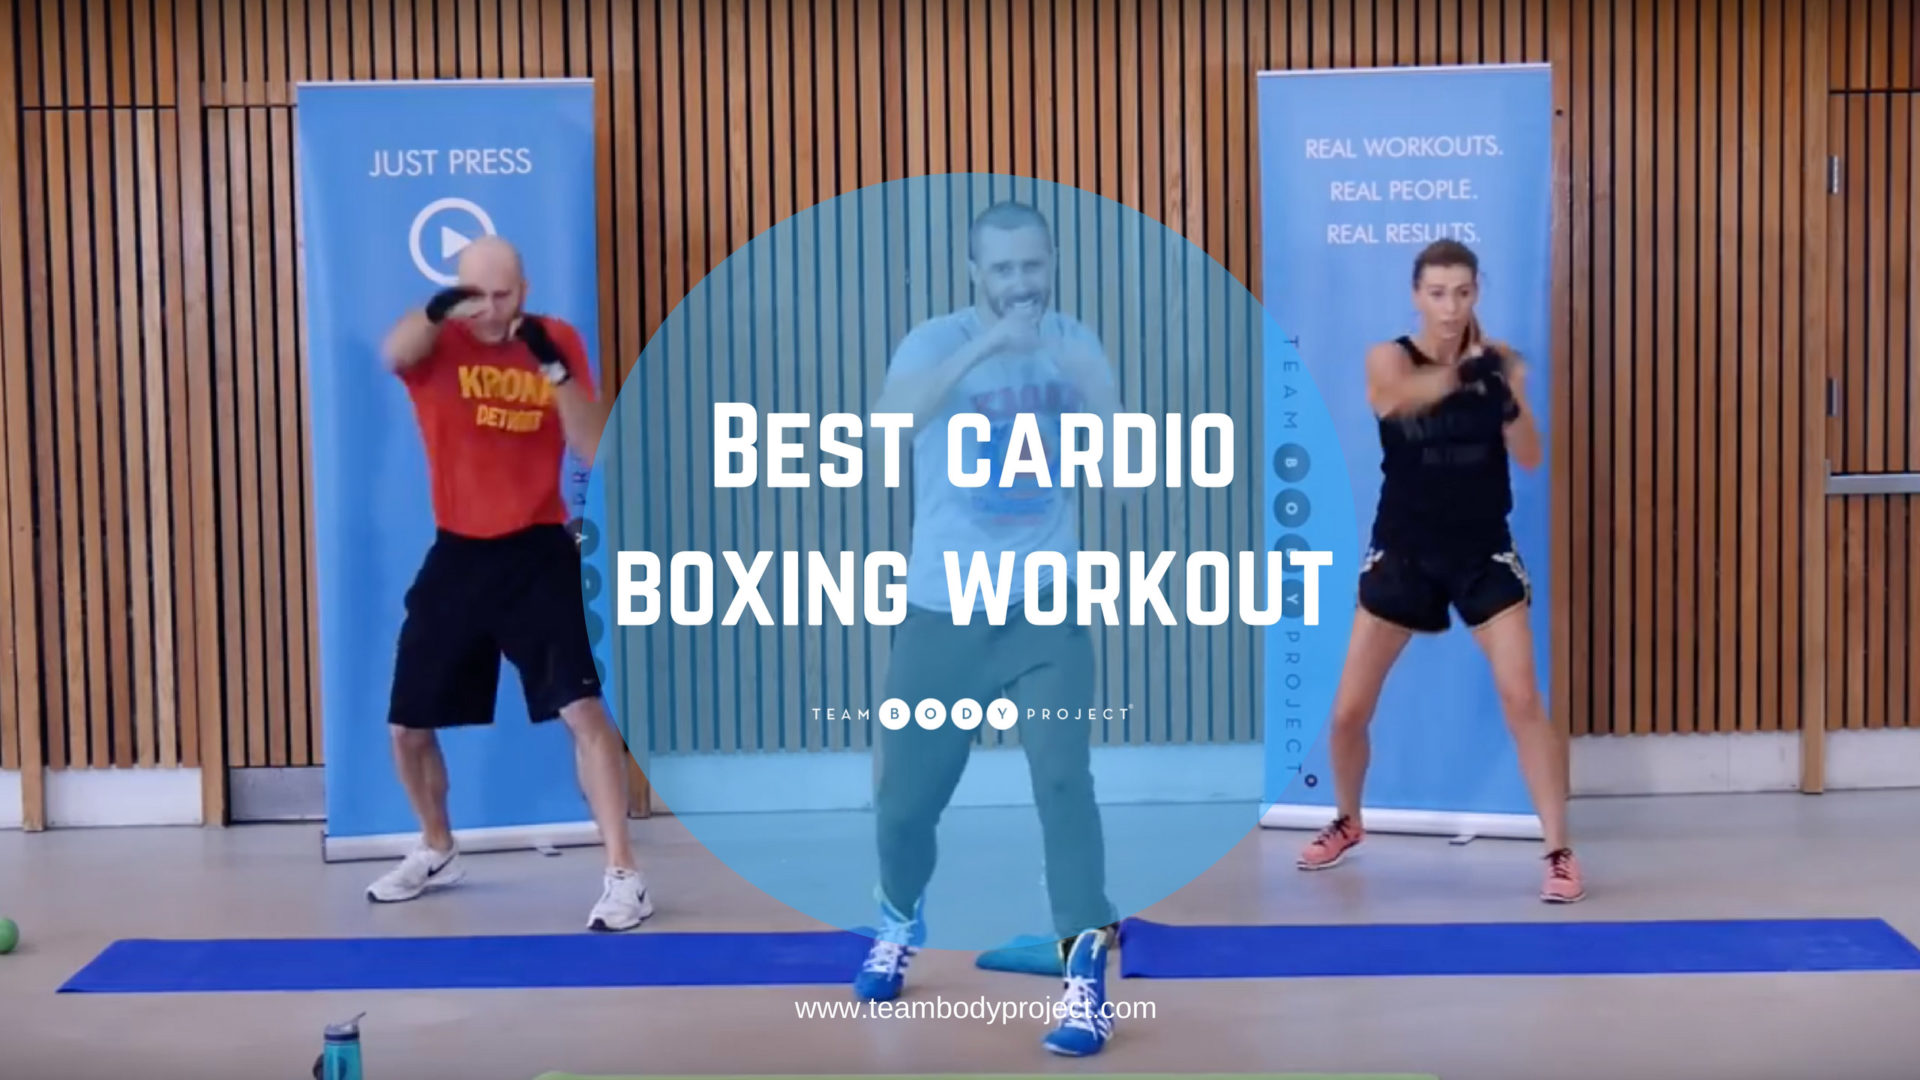 Best cardio boxing workout